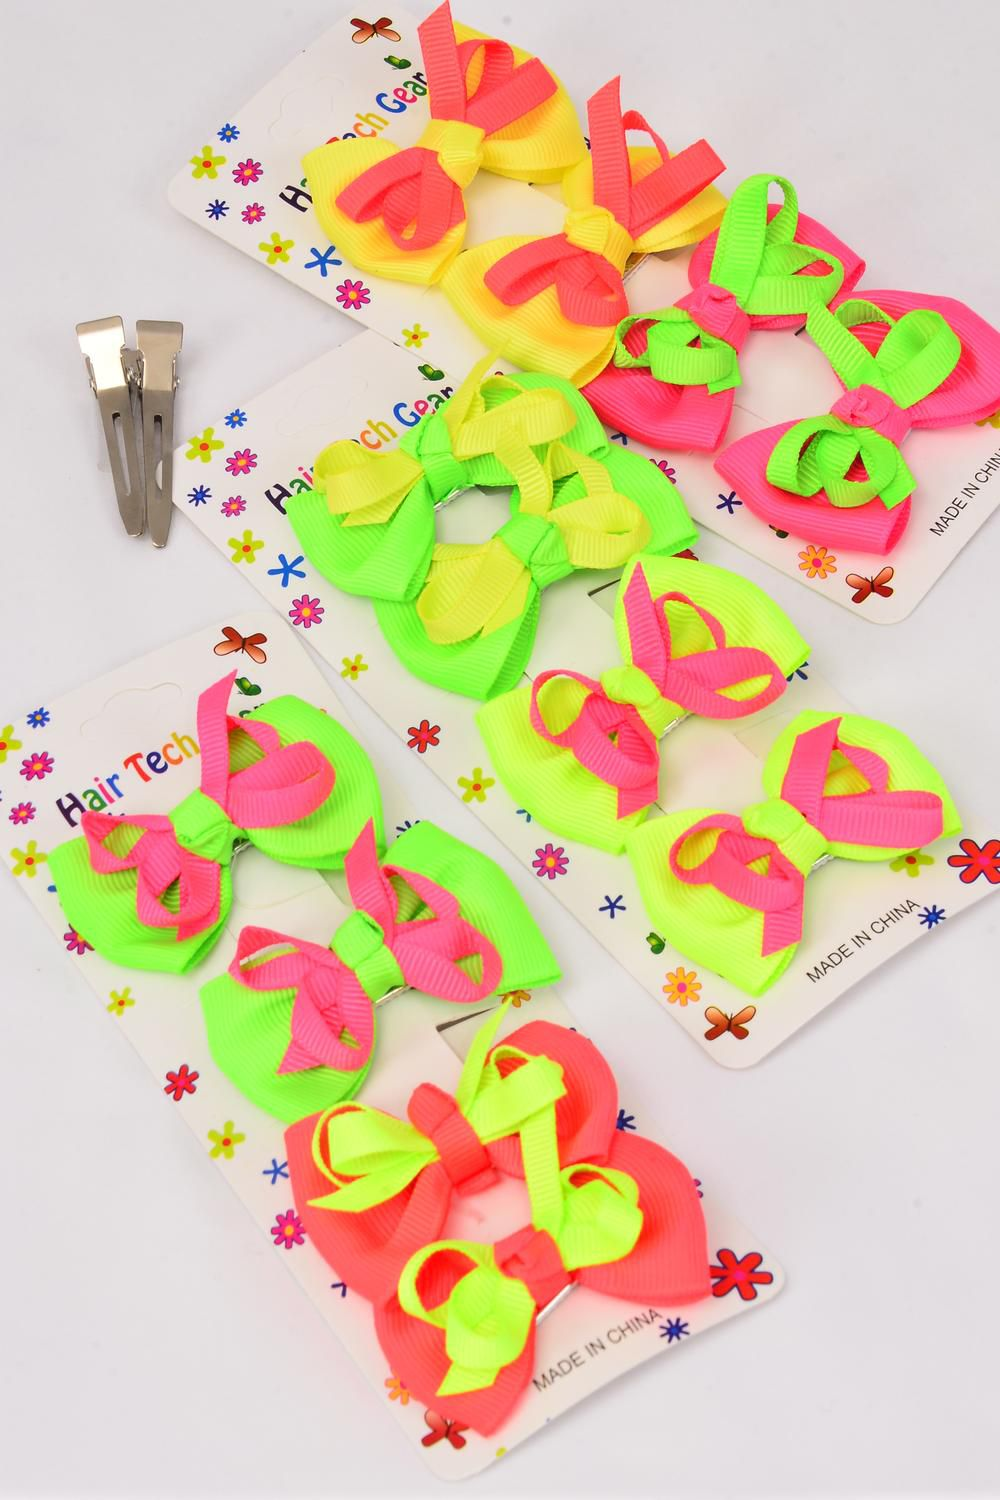 "Hair Bow Grosgrain Bow-tie Neon 48 pcs Alligator Clip/DZ **Alligator Clip** Bow-tie Size-2.5""x 1.5"" Wide,4 of each Color Asst,Display card & UPC code,4 pcs Bow-tie per Card,12card=Dozen-"